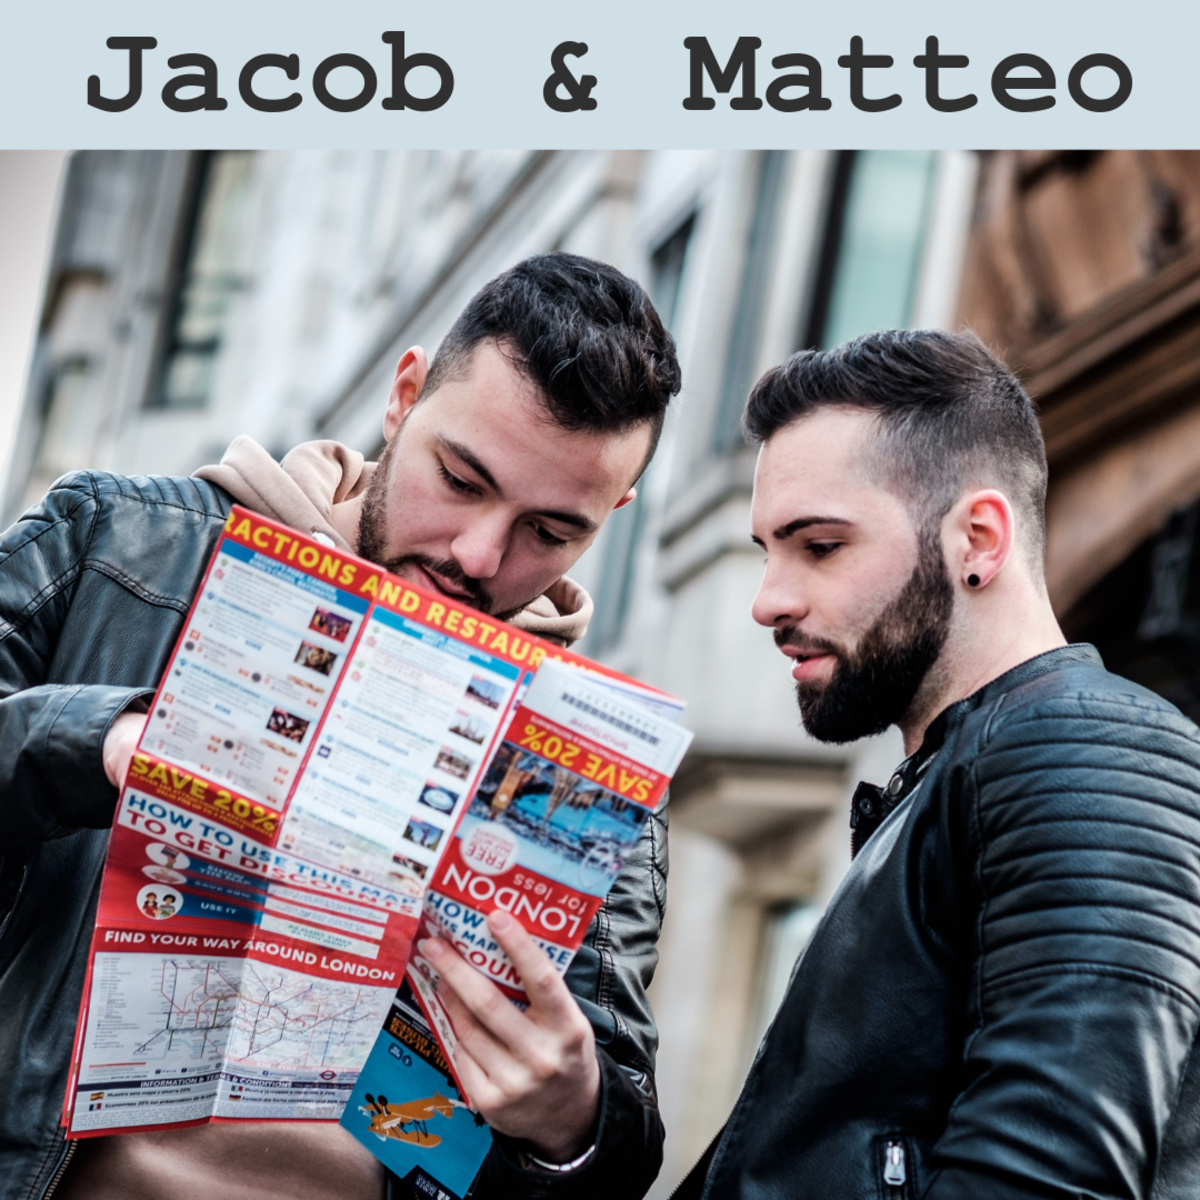 Jacob and Matteo